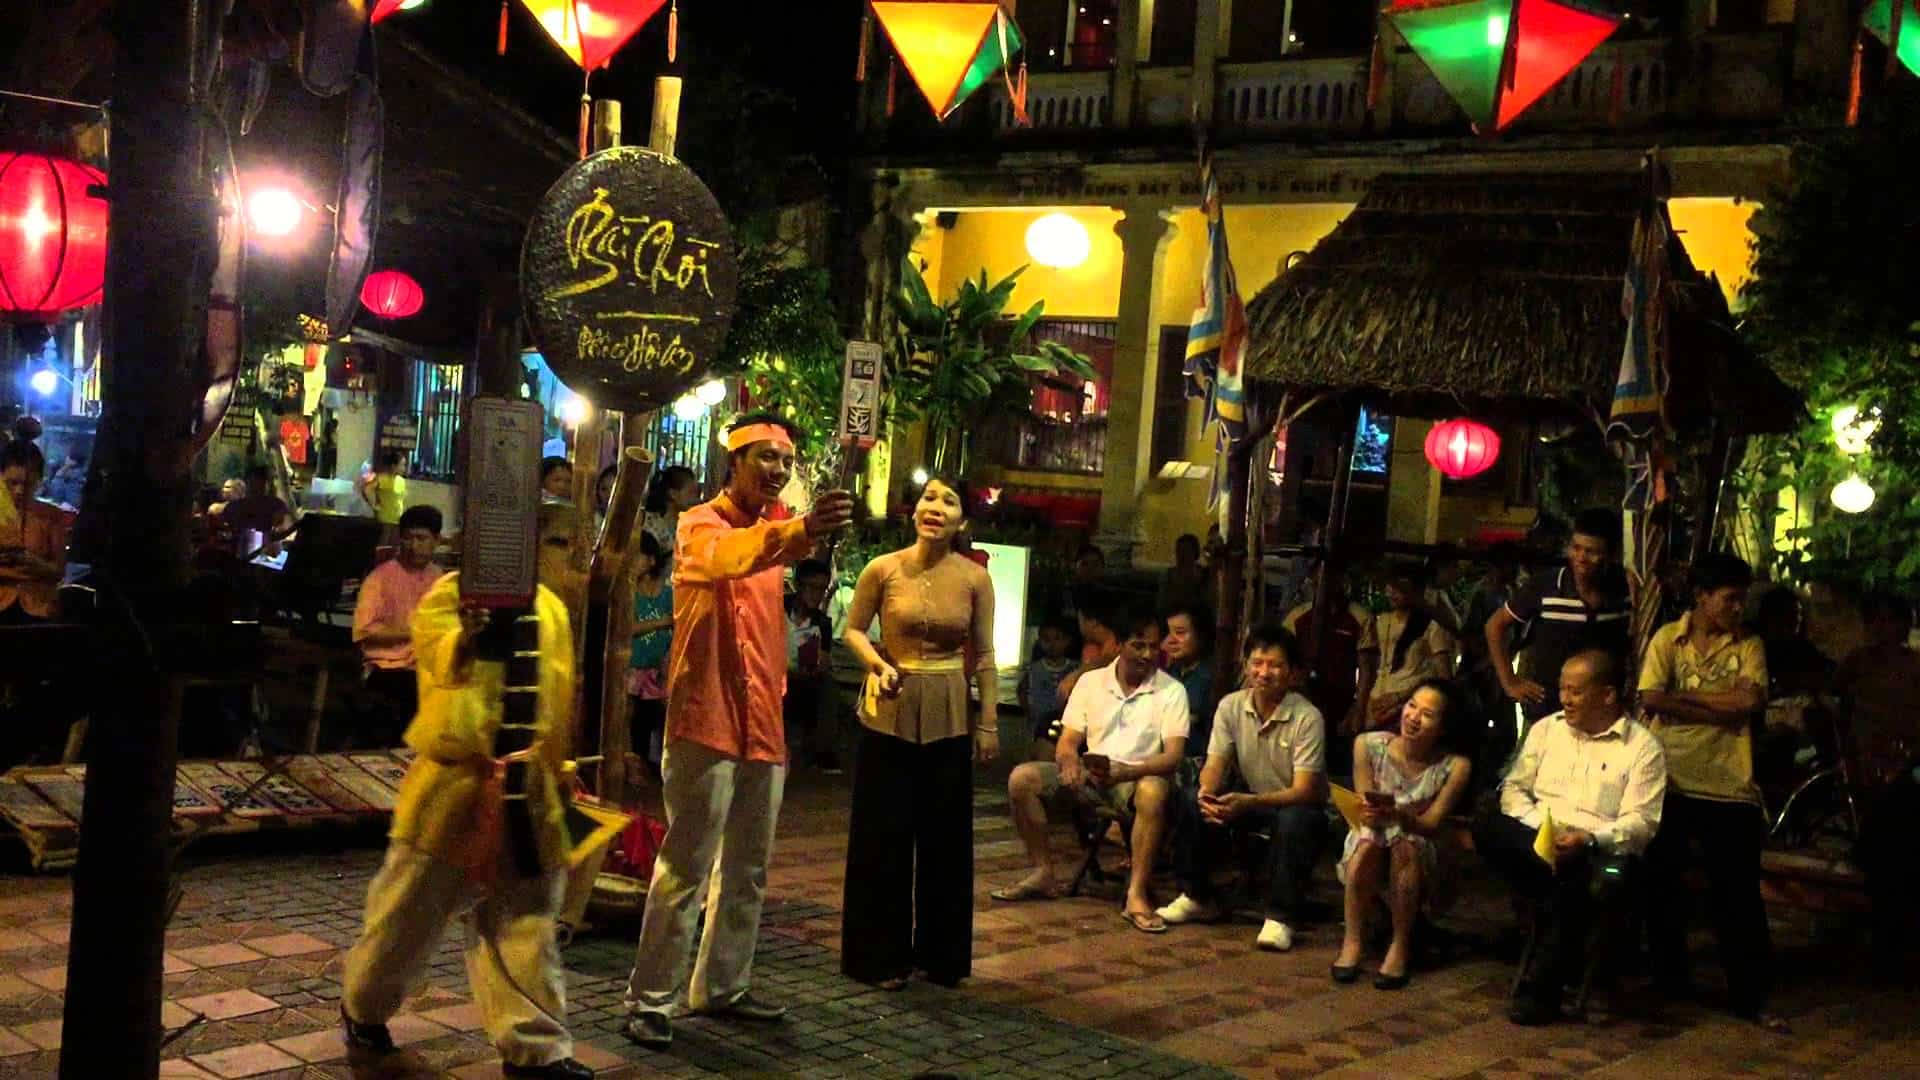 Night life in Hoi An